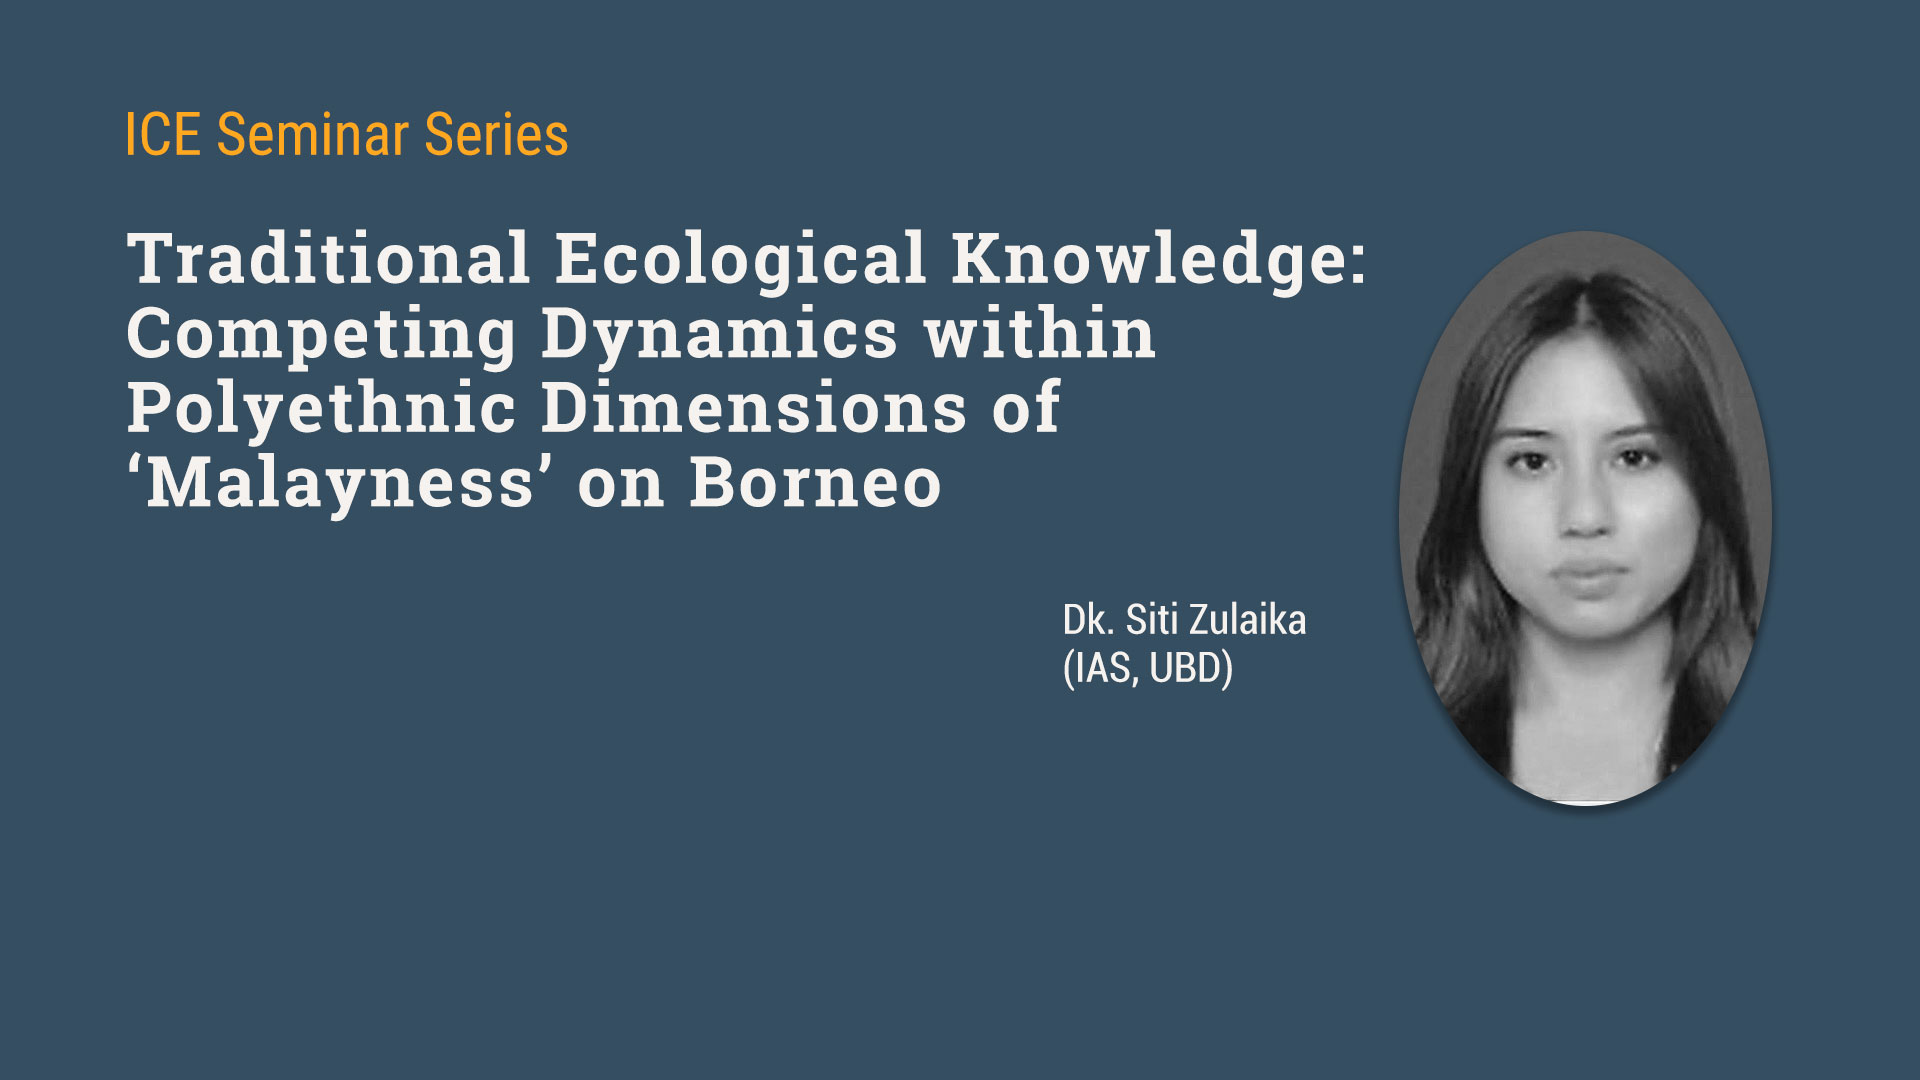 Seminar on Traditional Ecological Knowledge & Malayness on Borneo